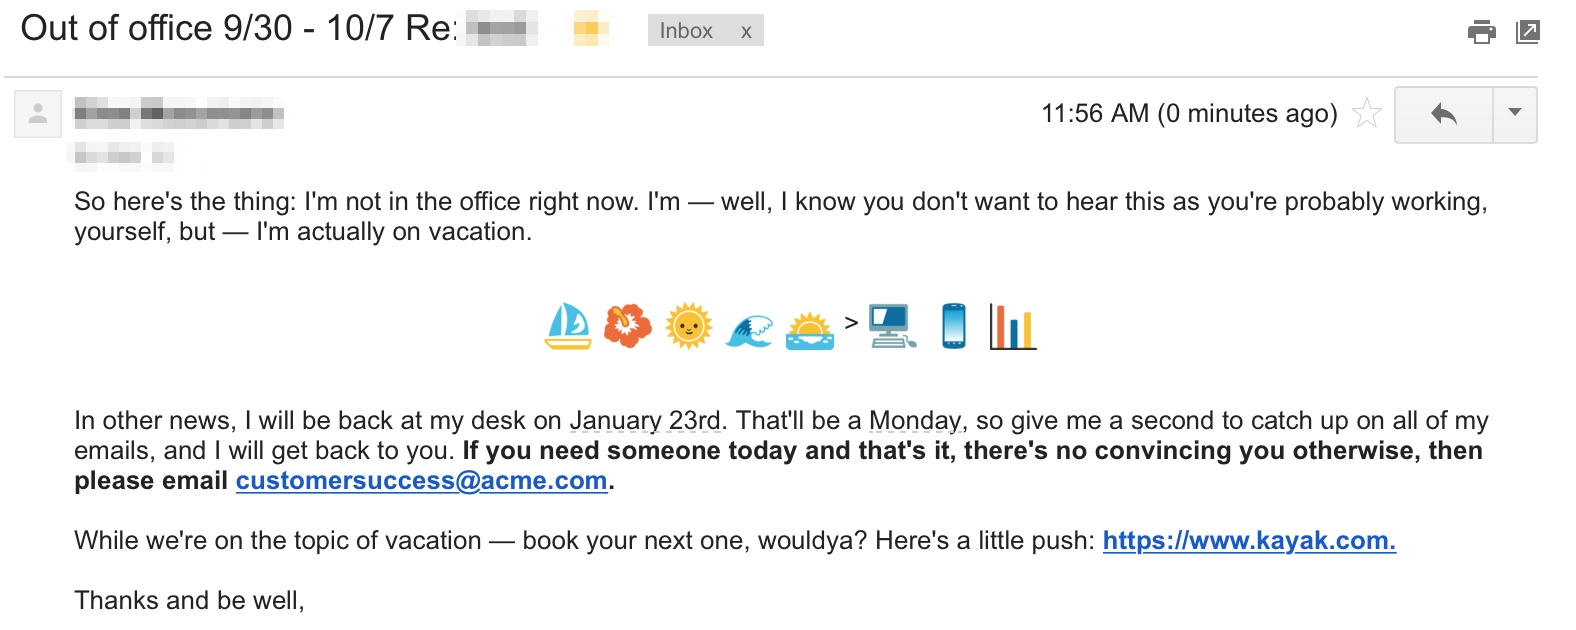 Out Of Office Message Sample | Examples and Forms